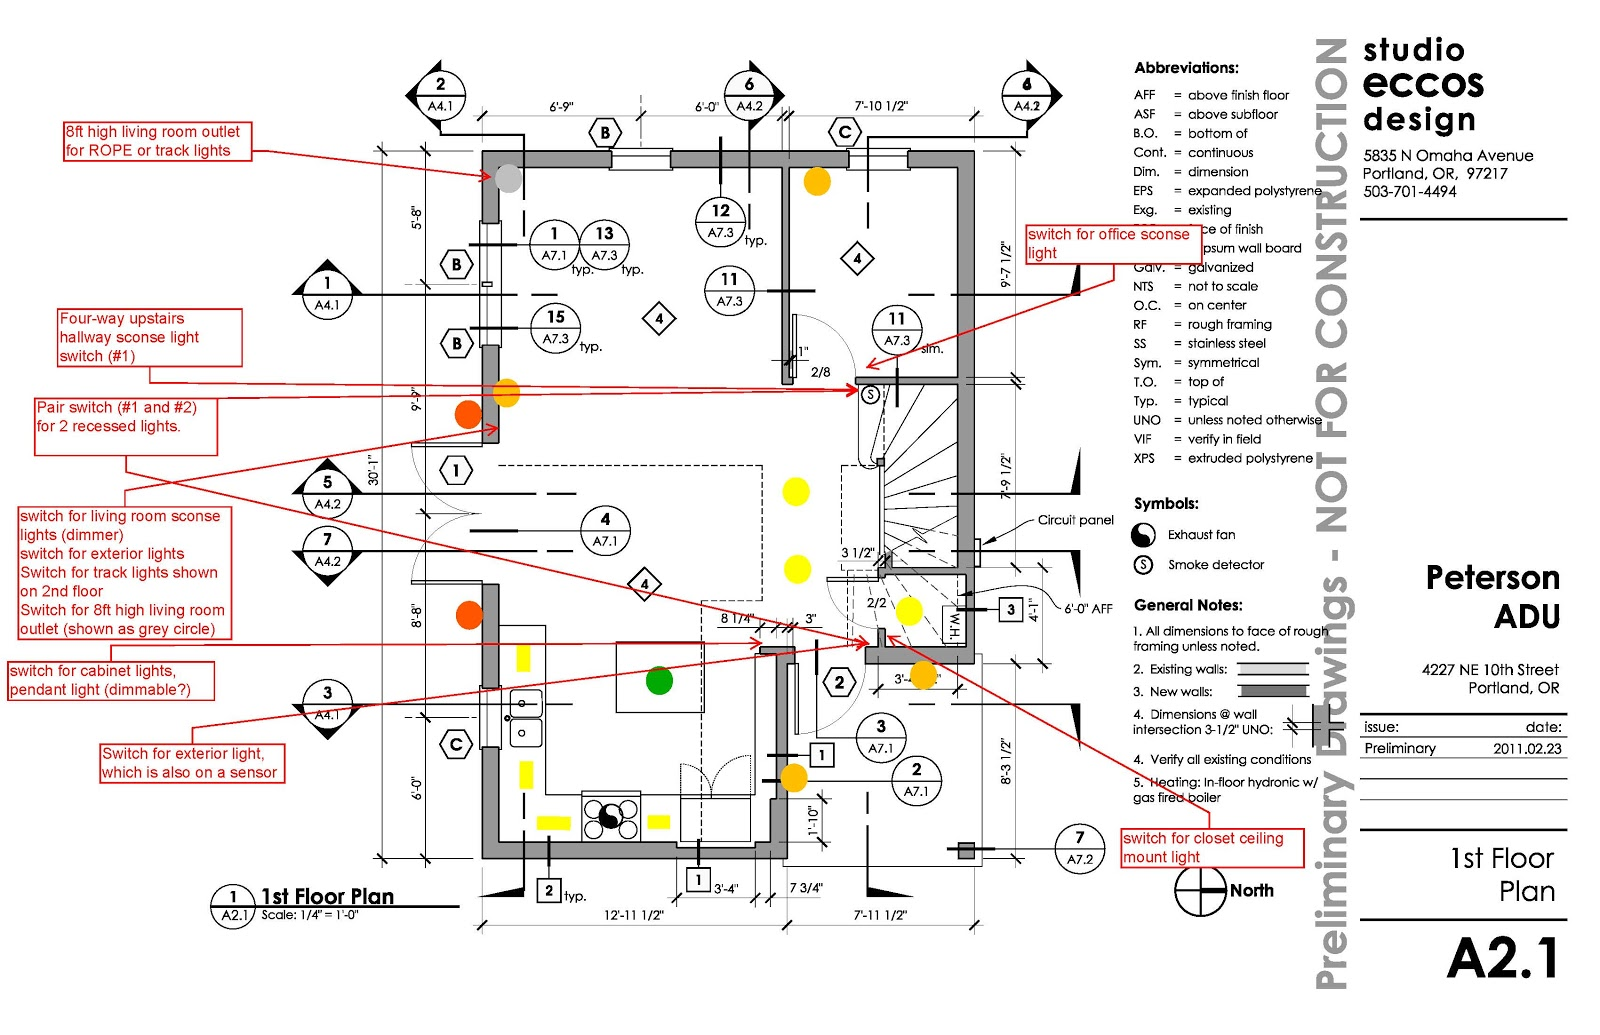 hight resolution of lighting plan for first floor